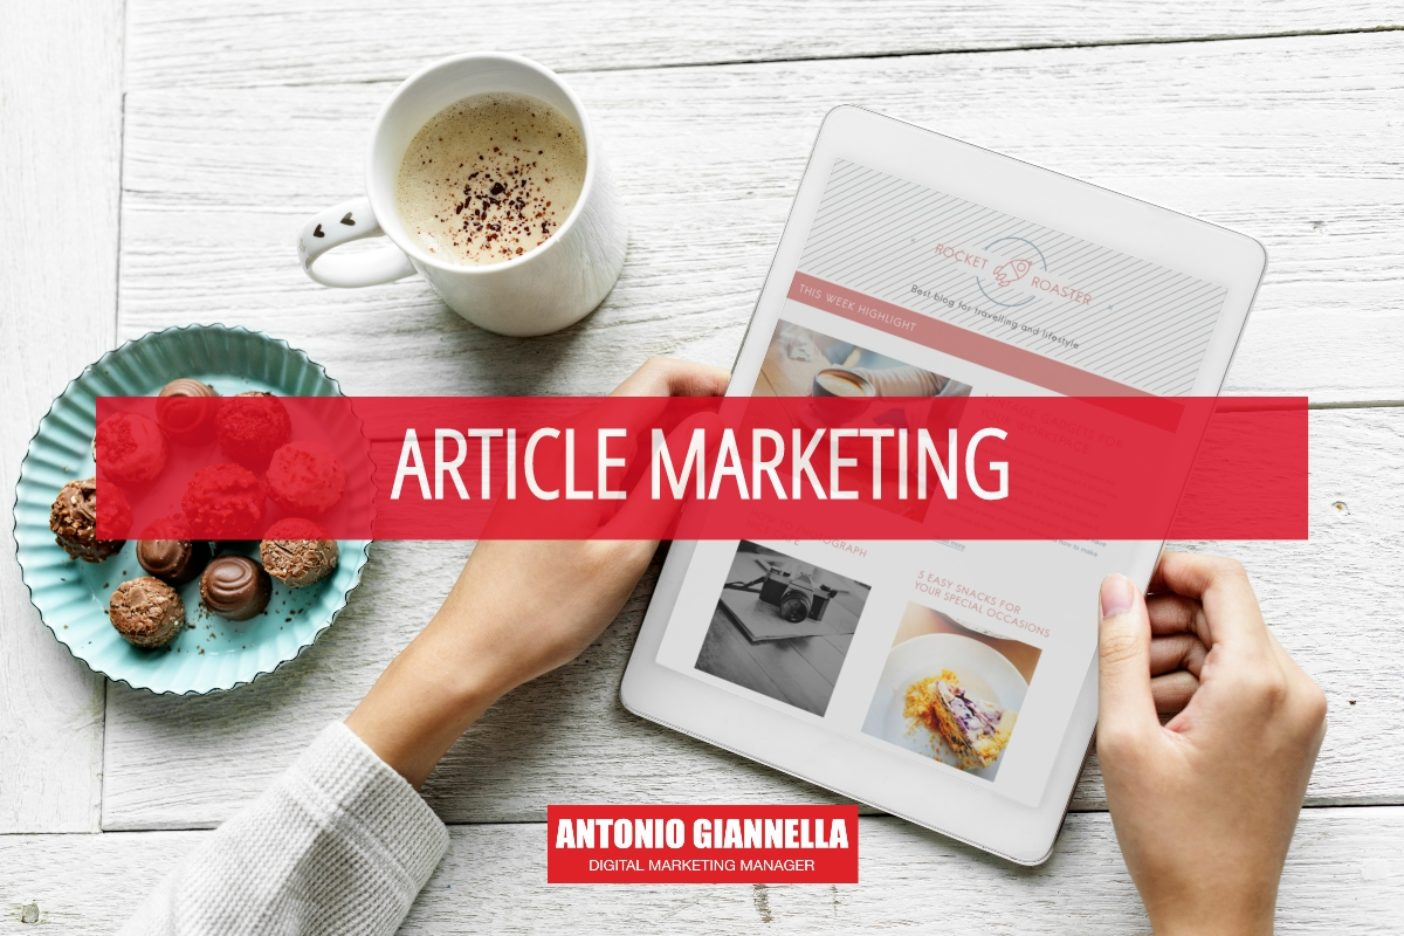 article marketing, Article Marketing: Come creare una strategia efficace